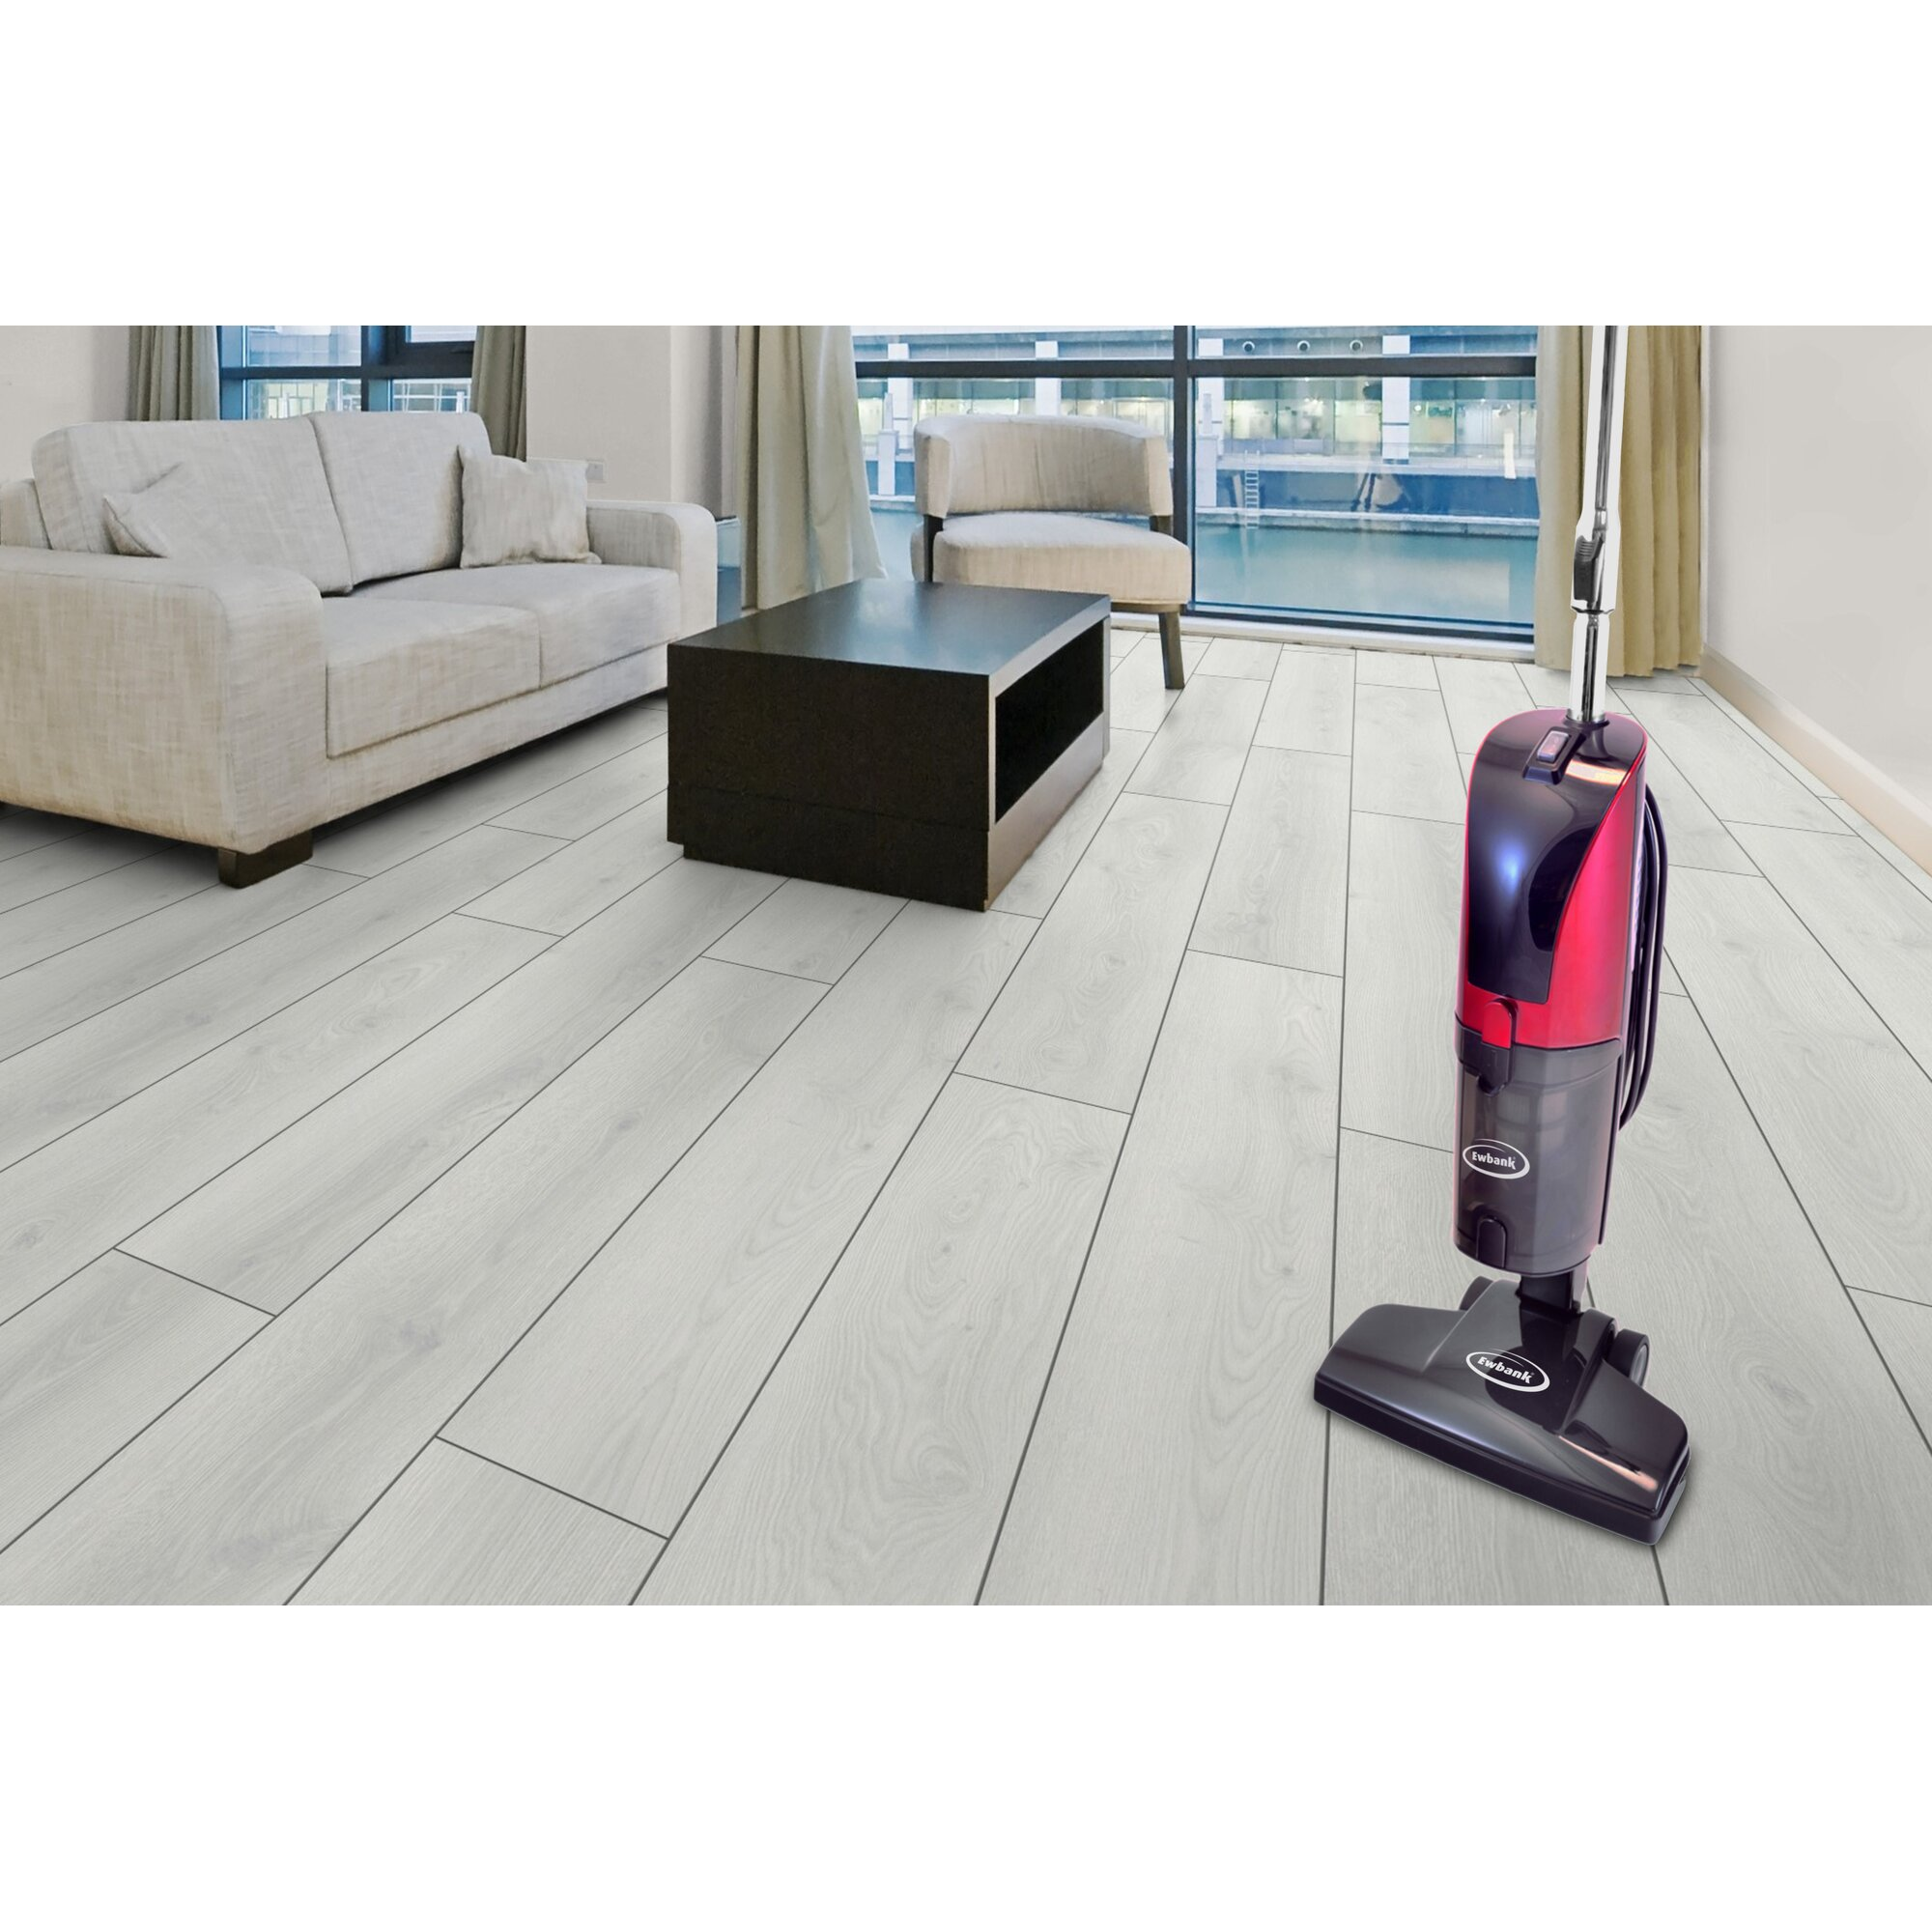 Tile floor cleaning machines reviews